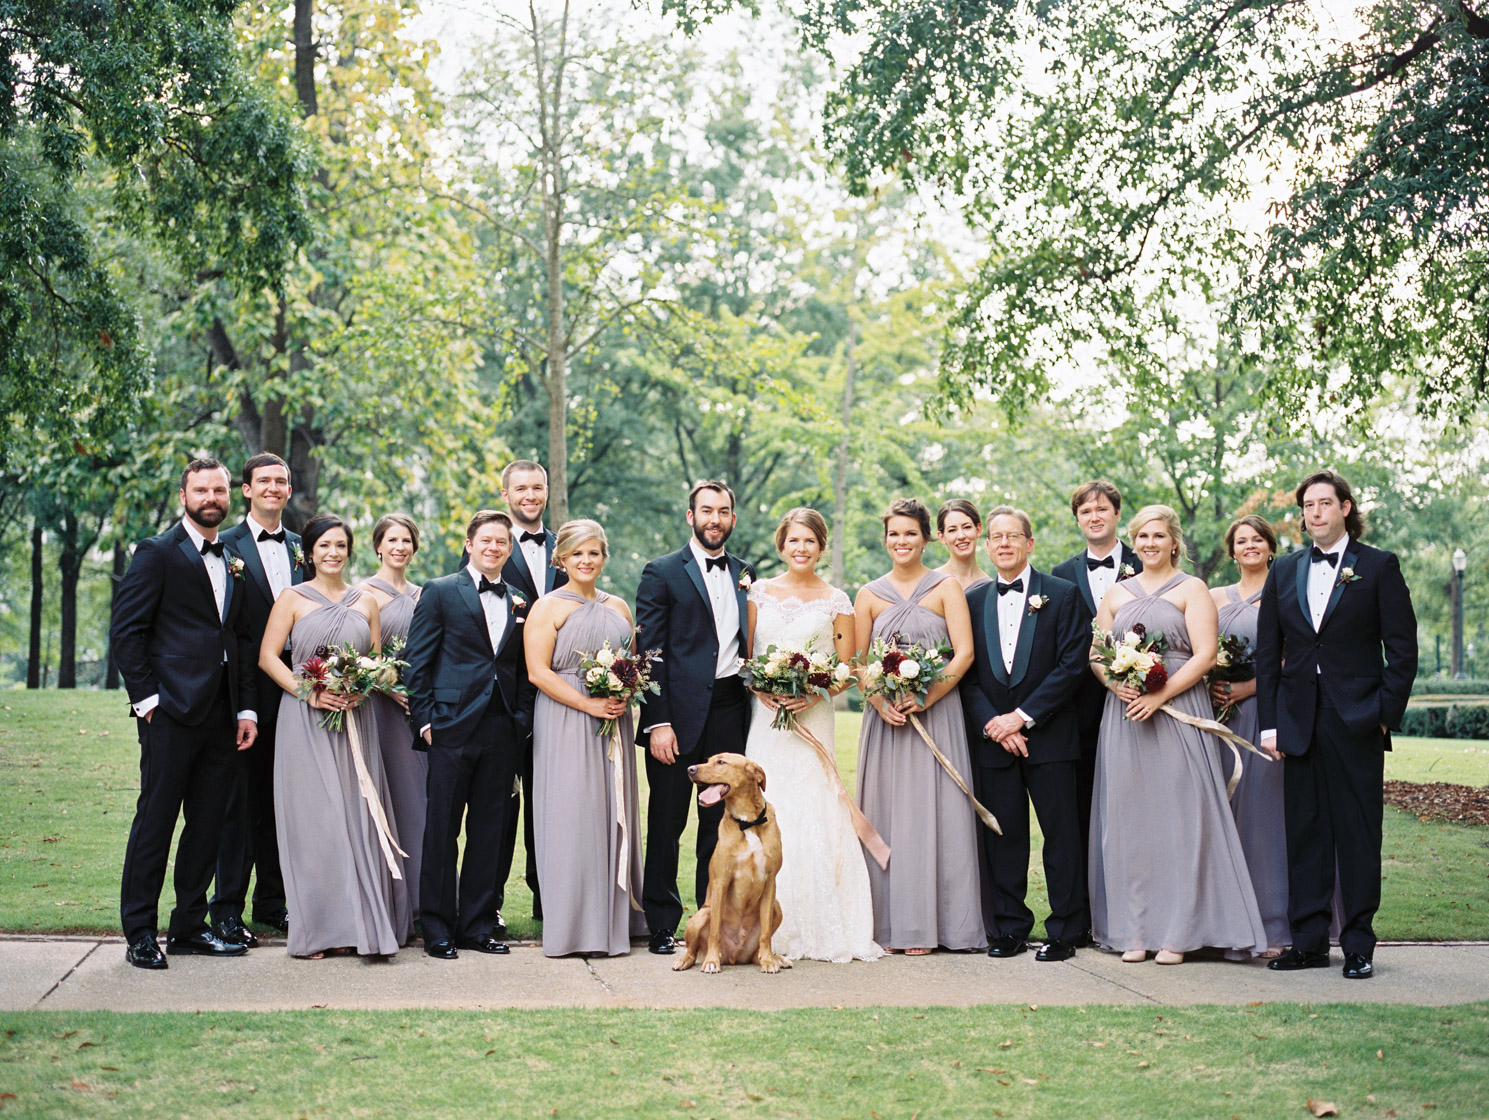 wedding party Linn Park Birmingham AL and purple bridesmaids dresses